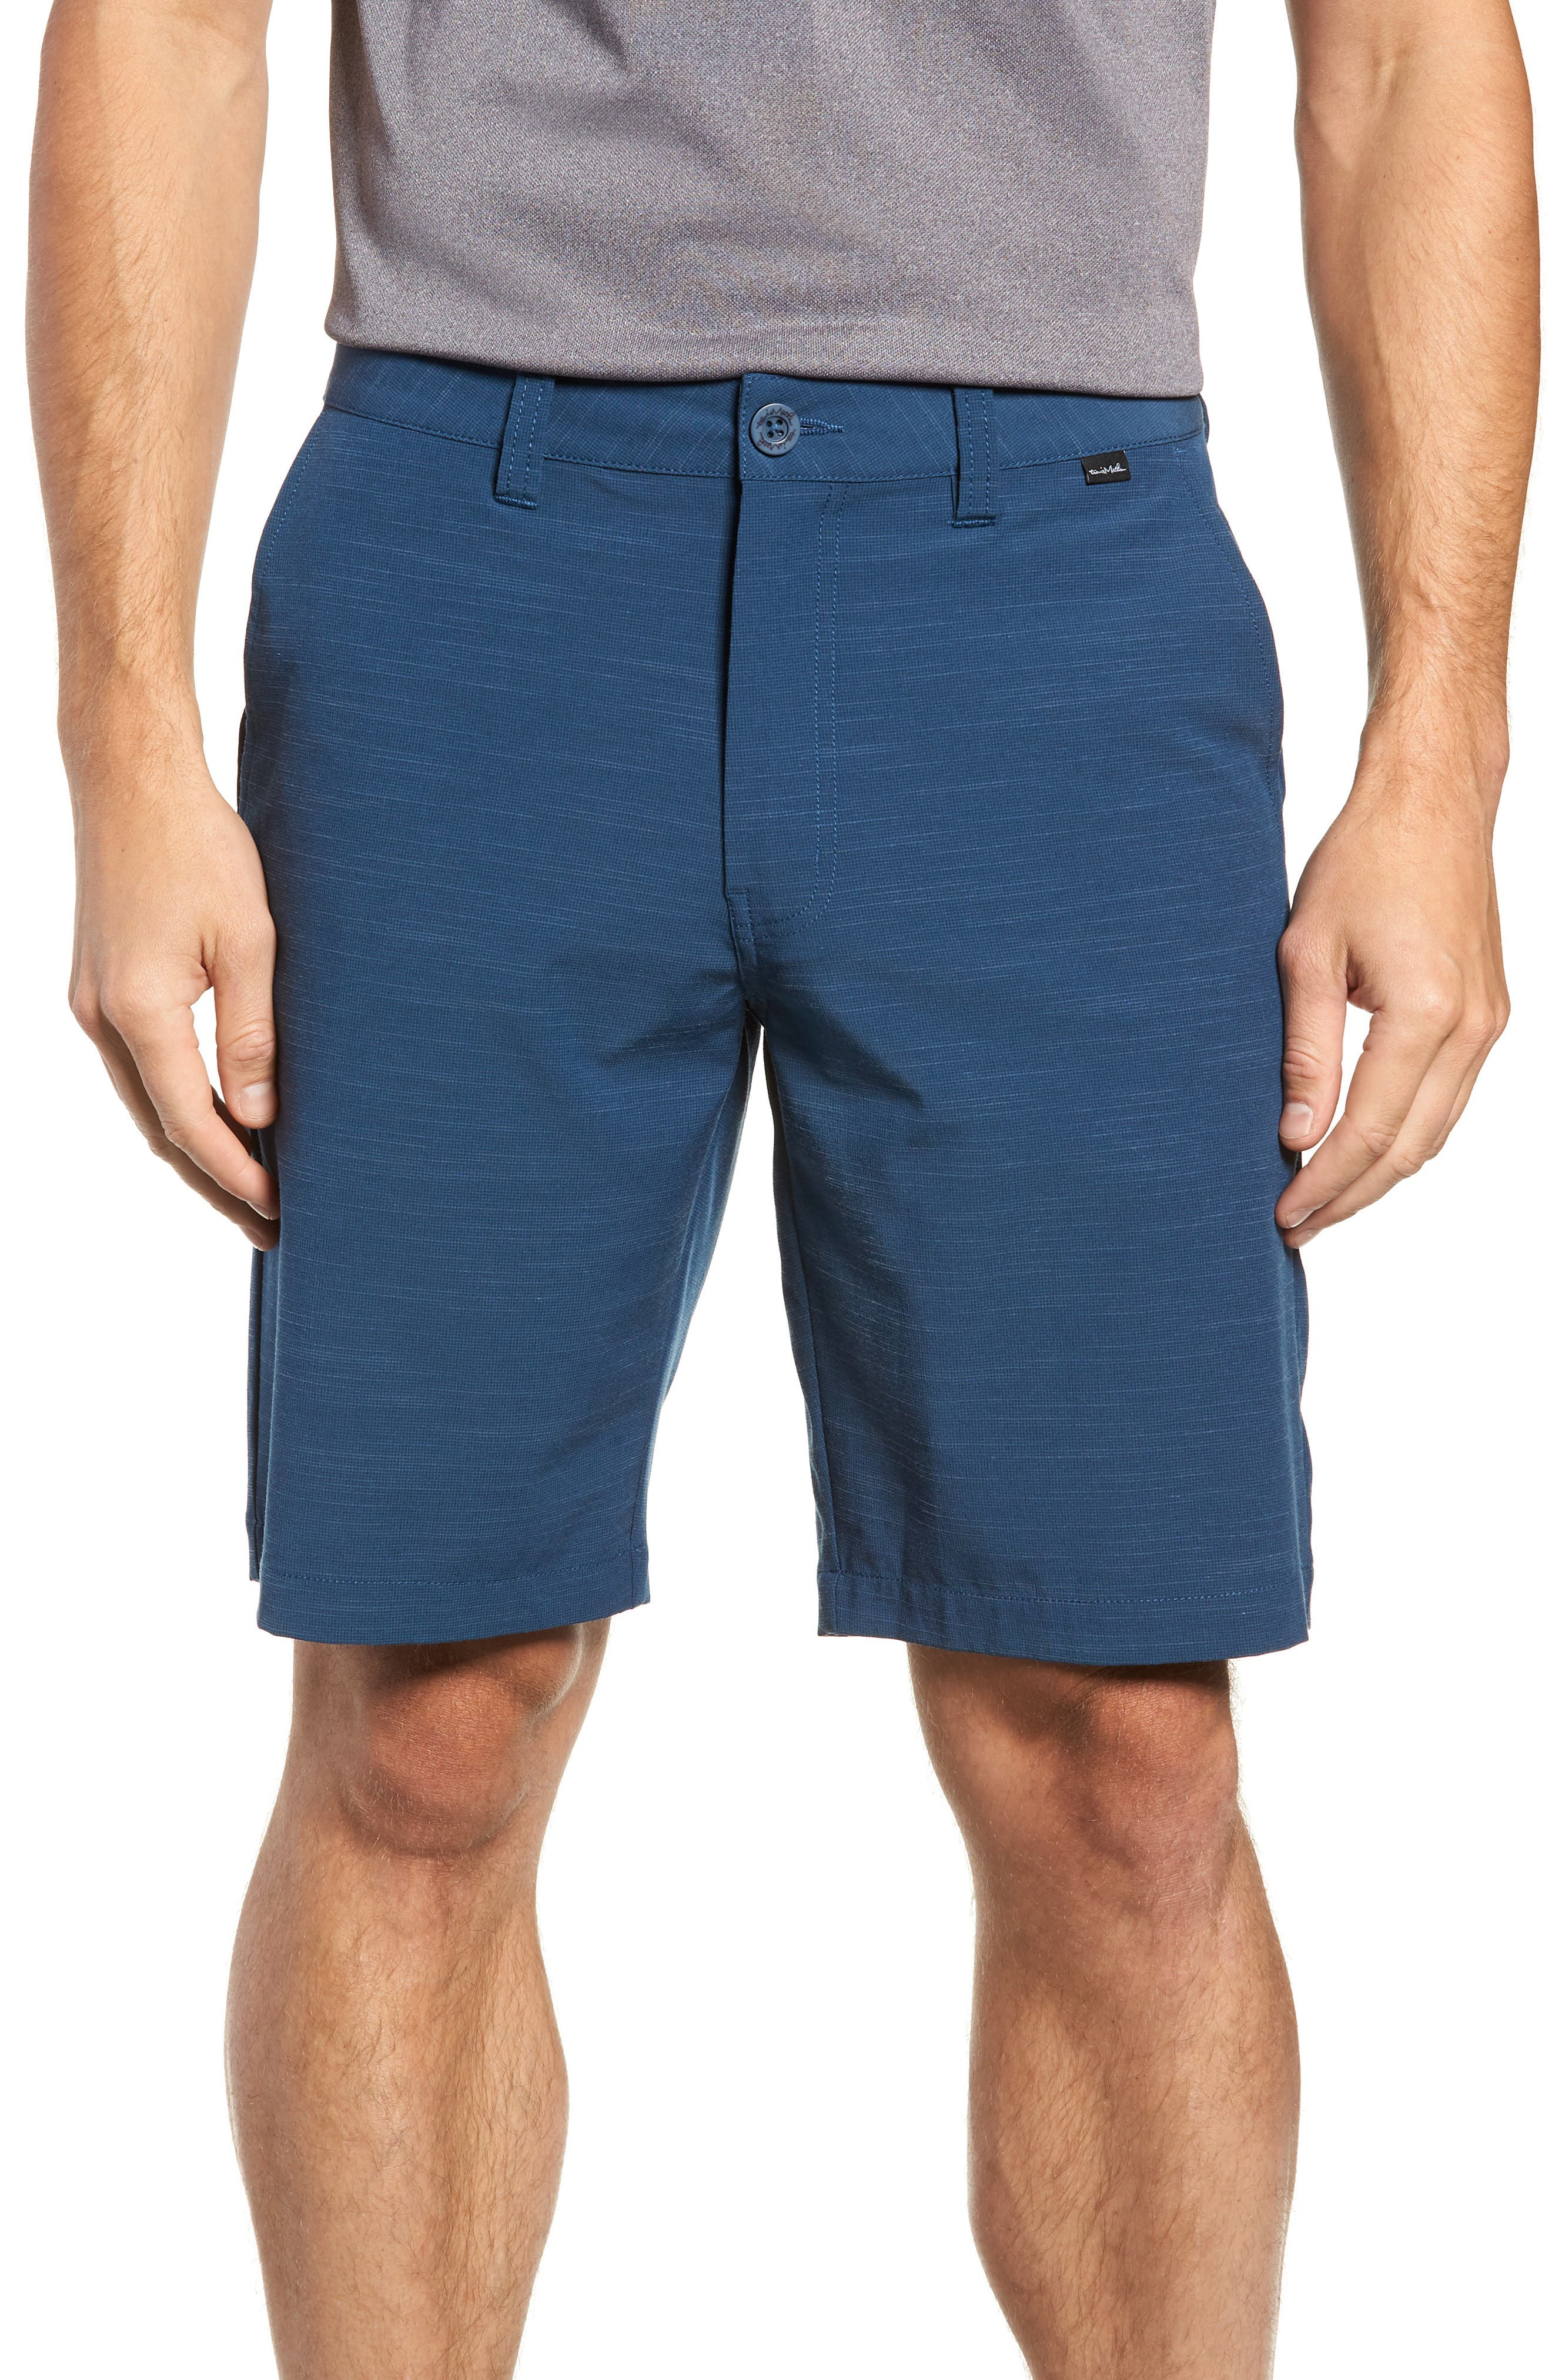 Undertow Hybrid Shorts,                         Main,                         color, BLUE WING TEAL